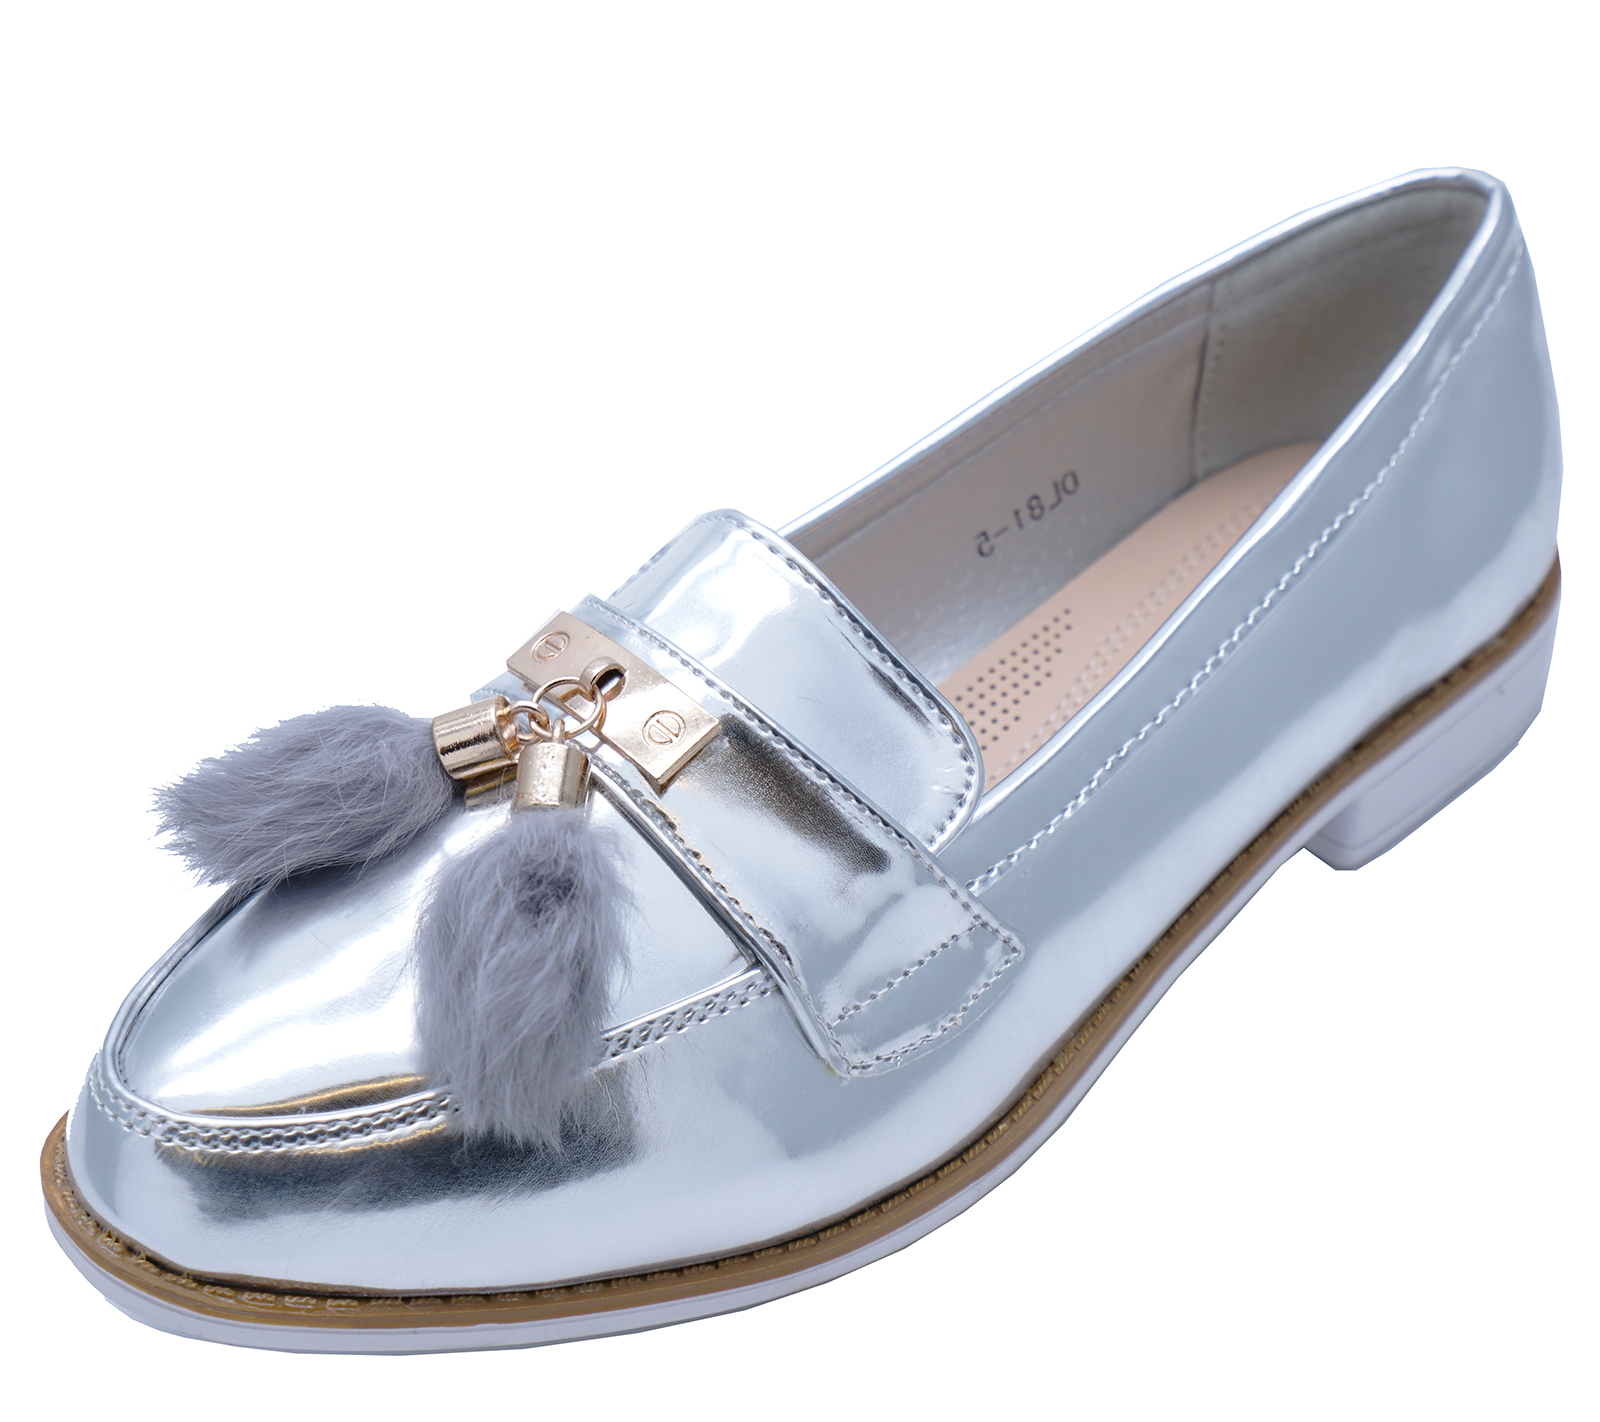 6284e9abac4 Sentinel WOMENS SILVER PATENT FLAT COMFY SLIP-ON LOAFERS SMART TASSLE PUMPS  SHOES UK 3-